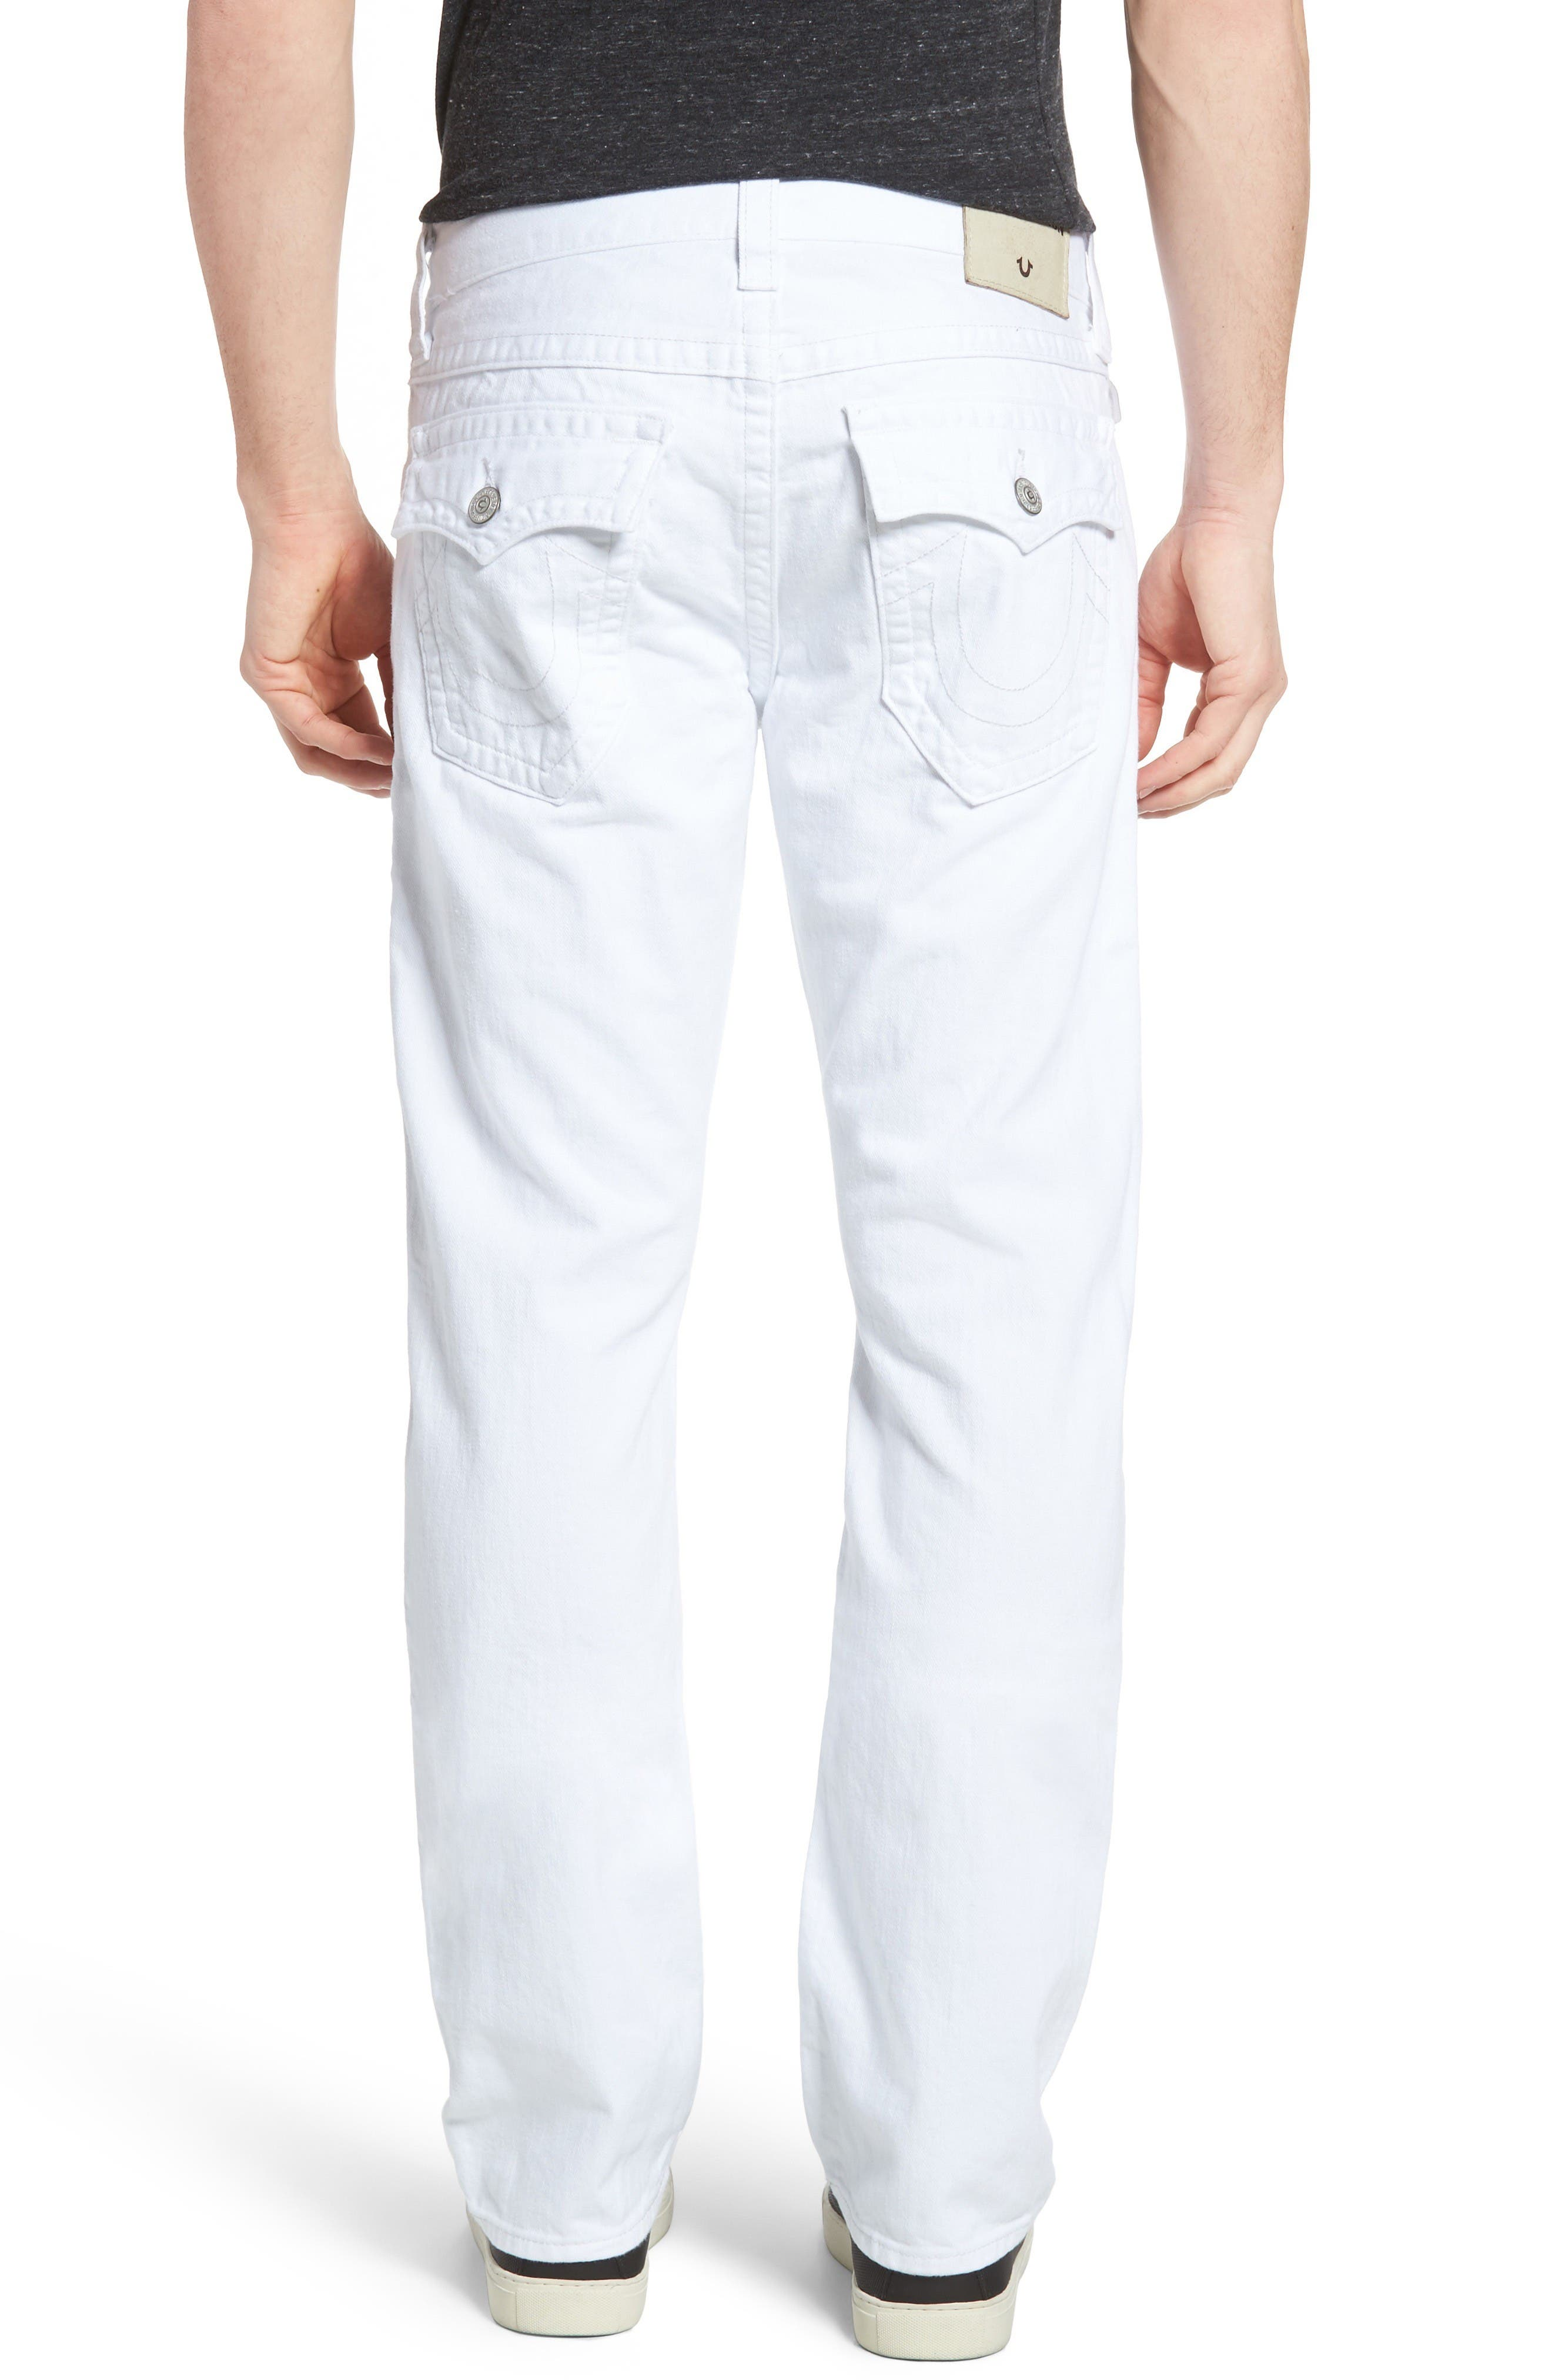 Alternate Image 2  - True Religion Brand Jeans Ricky Relaxed Fit Jeans (Optic White) (Regular & Big)